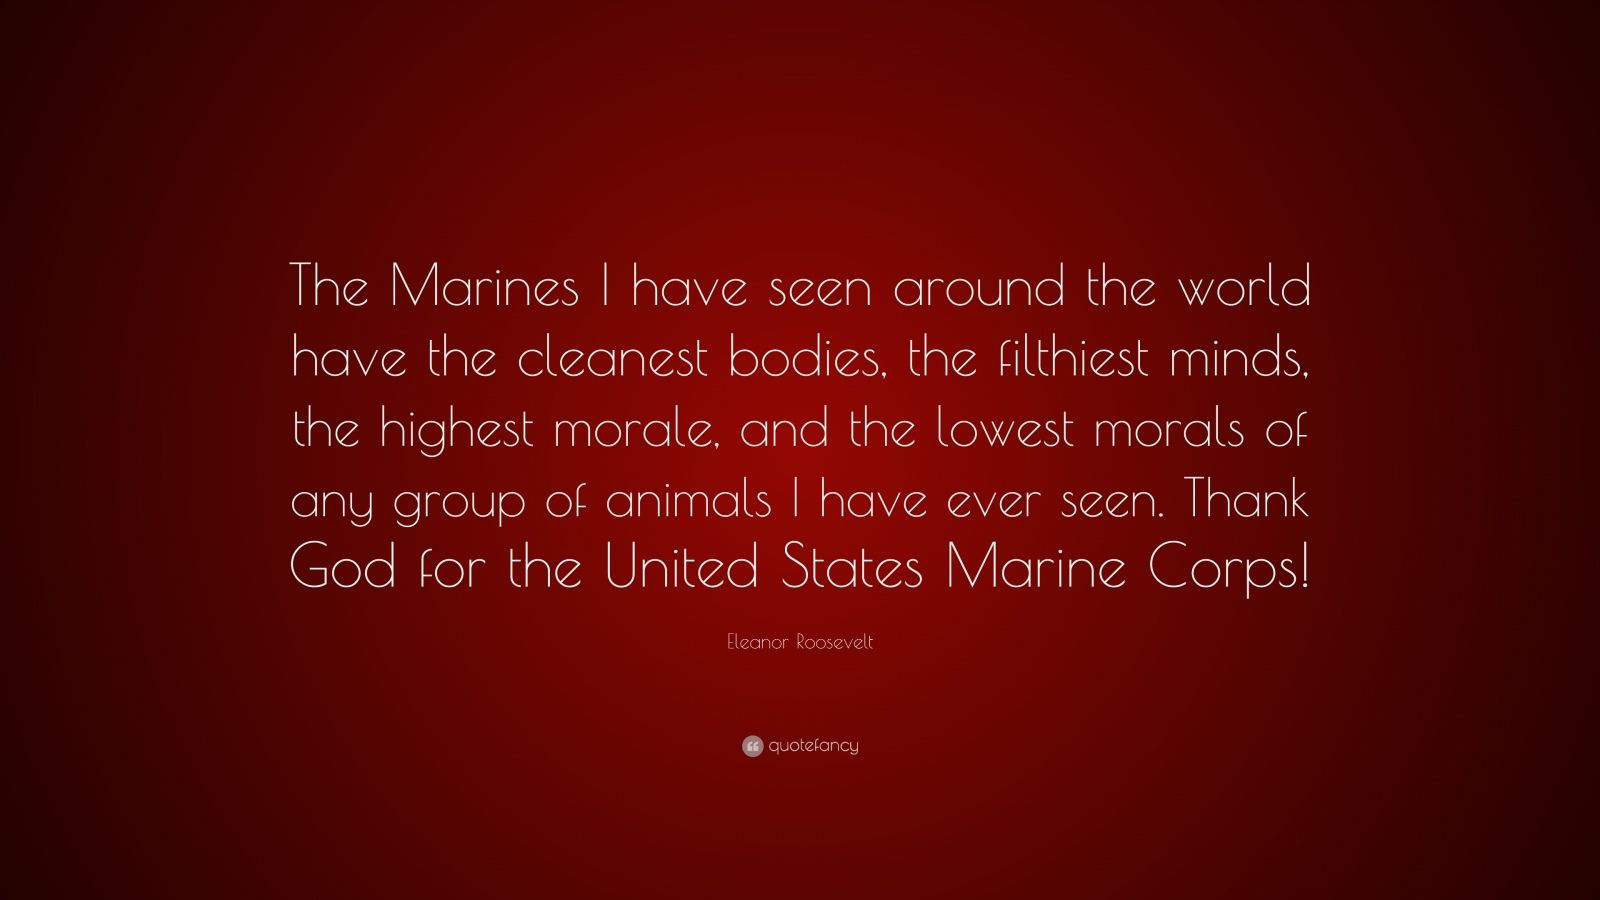 Eleanor Roosevelt Quote About Marines Pleasing Eleanor Roosevelt Quotes 100 Wallpapers  Quotefancy